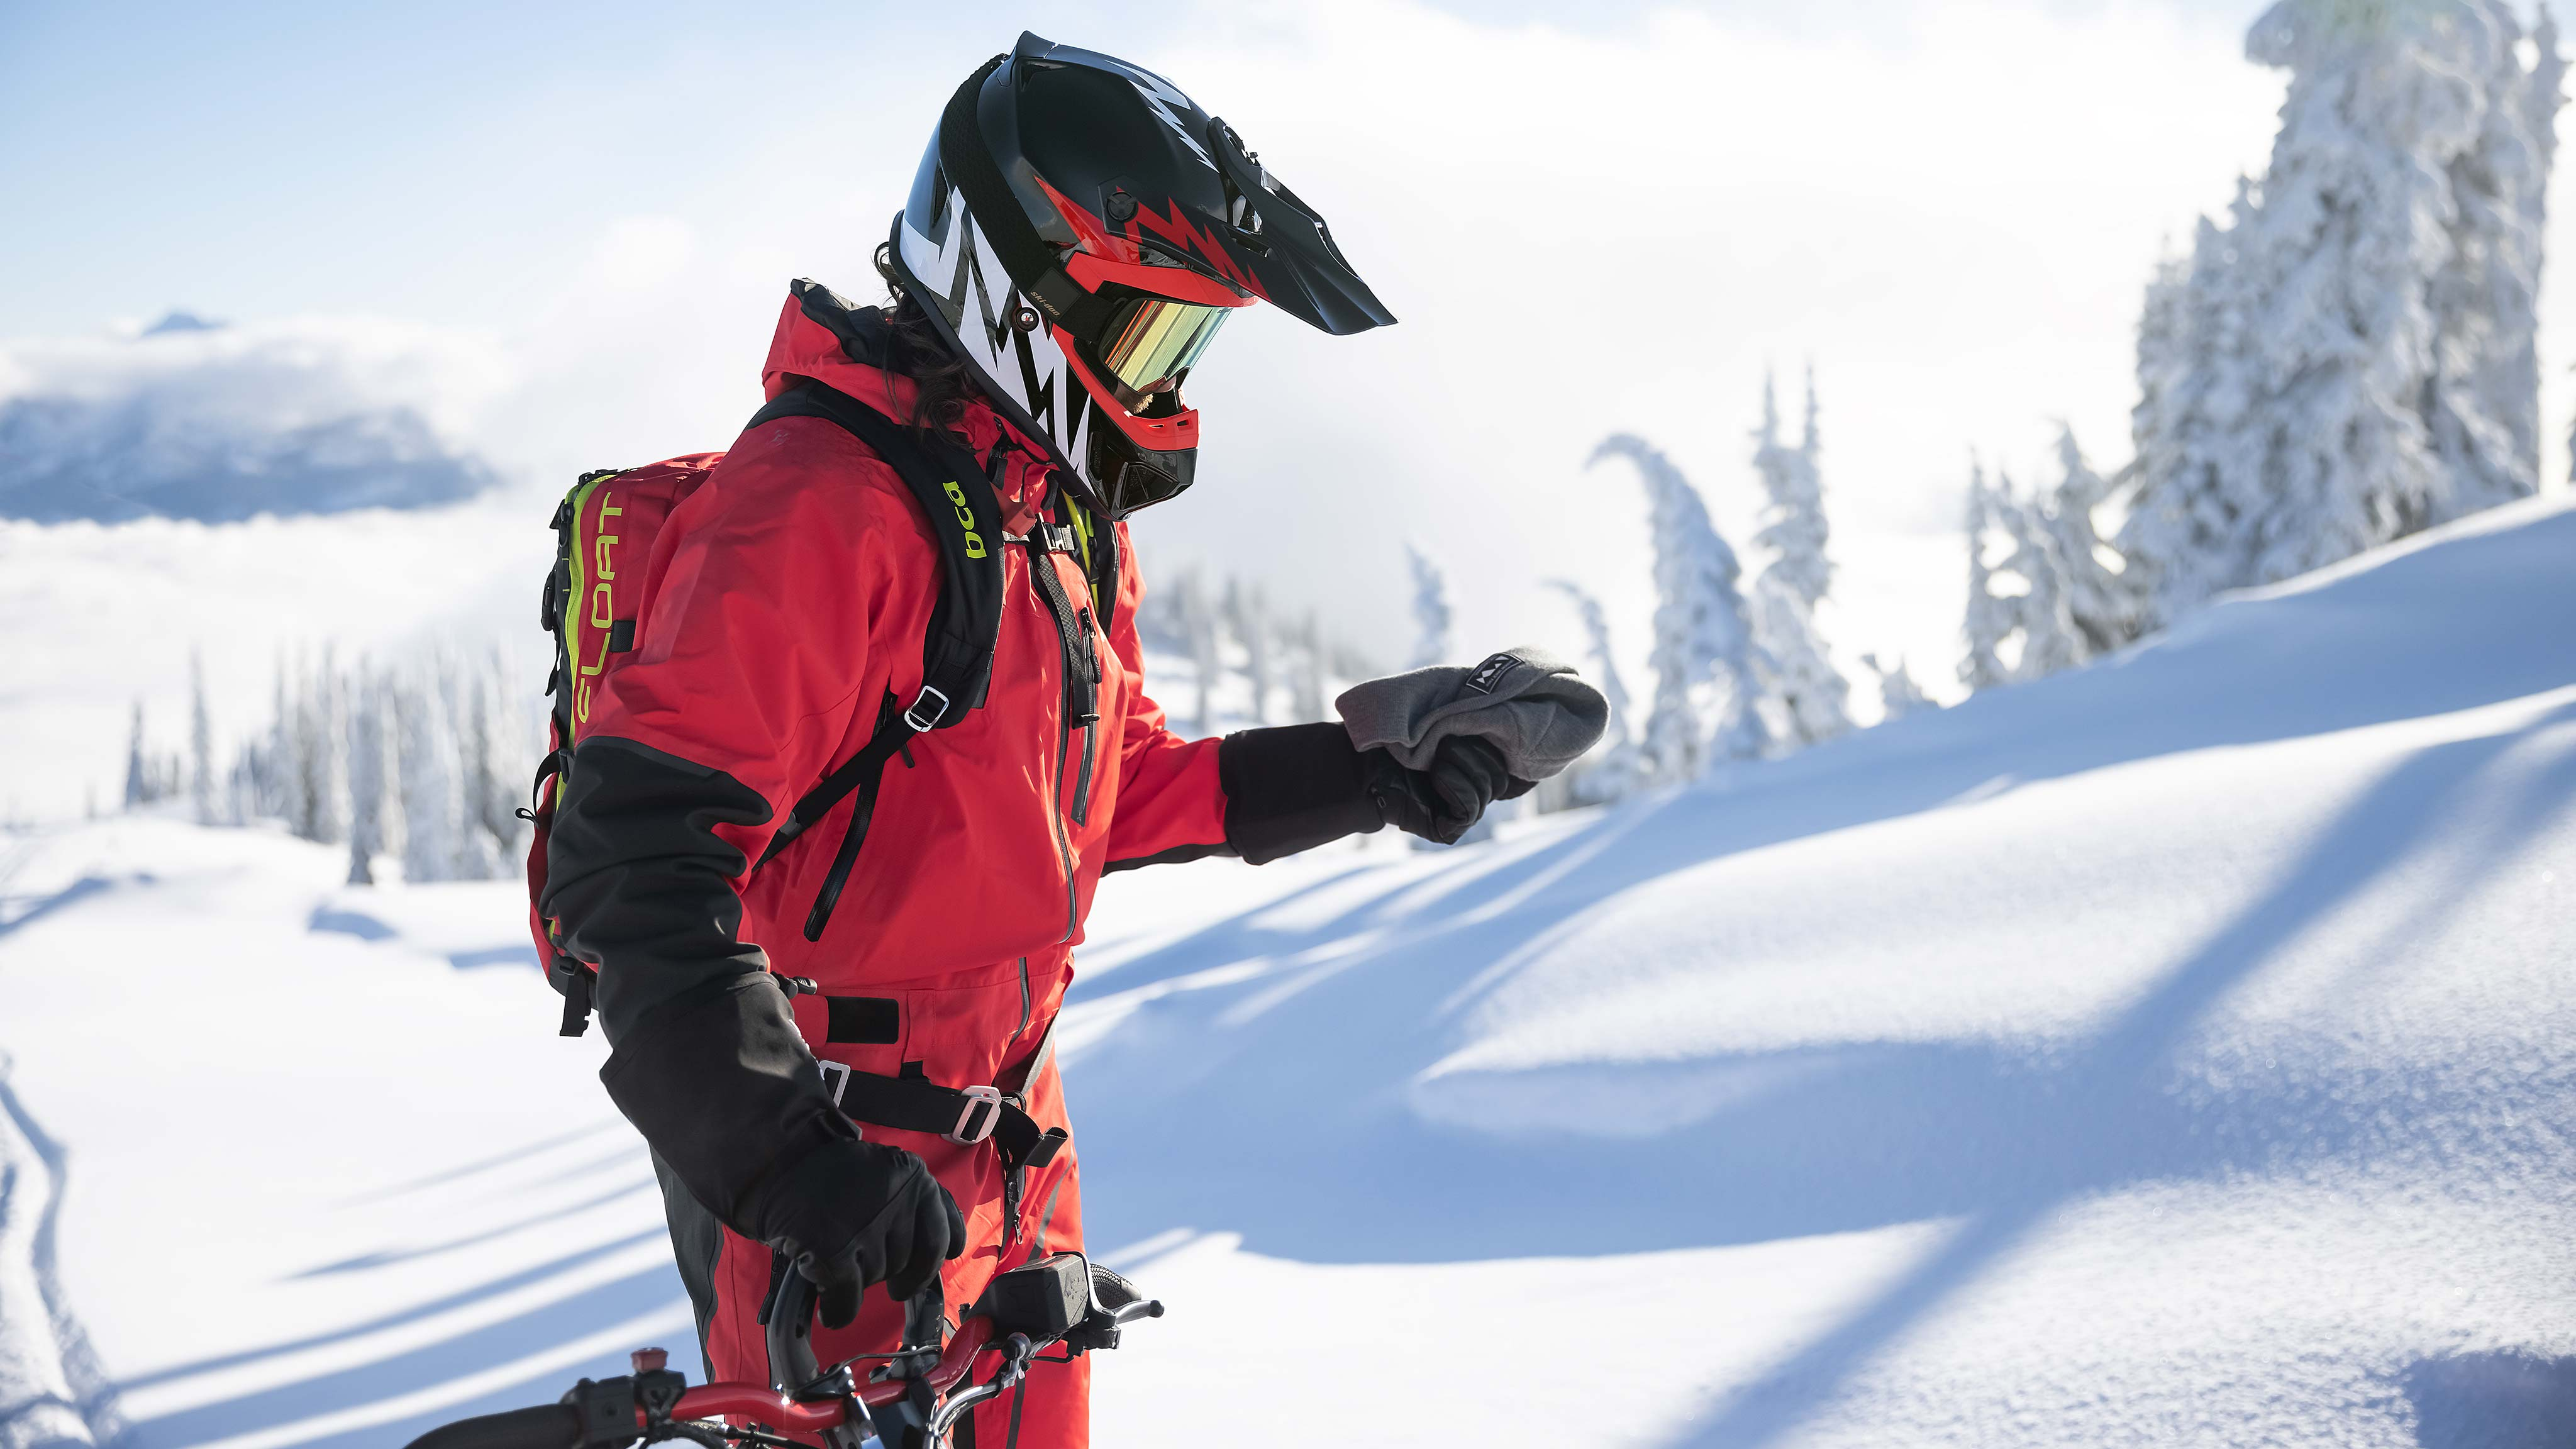 Lynx snowmobile rider with helmet and one-piece suit on terrain